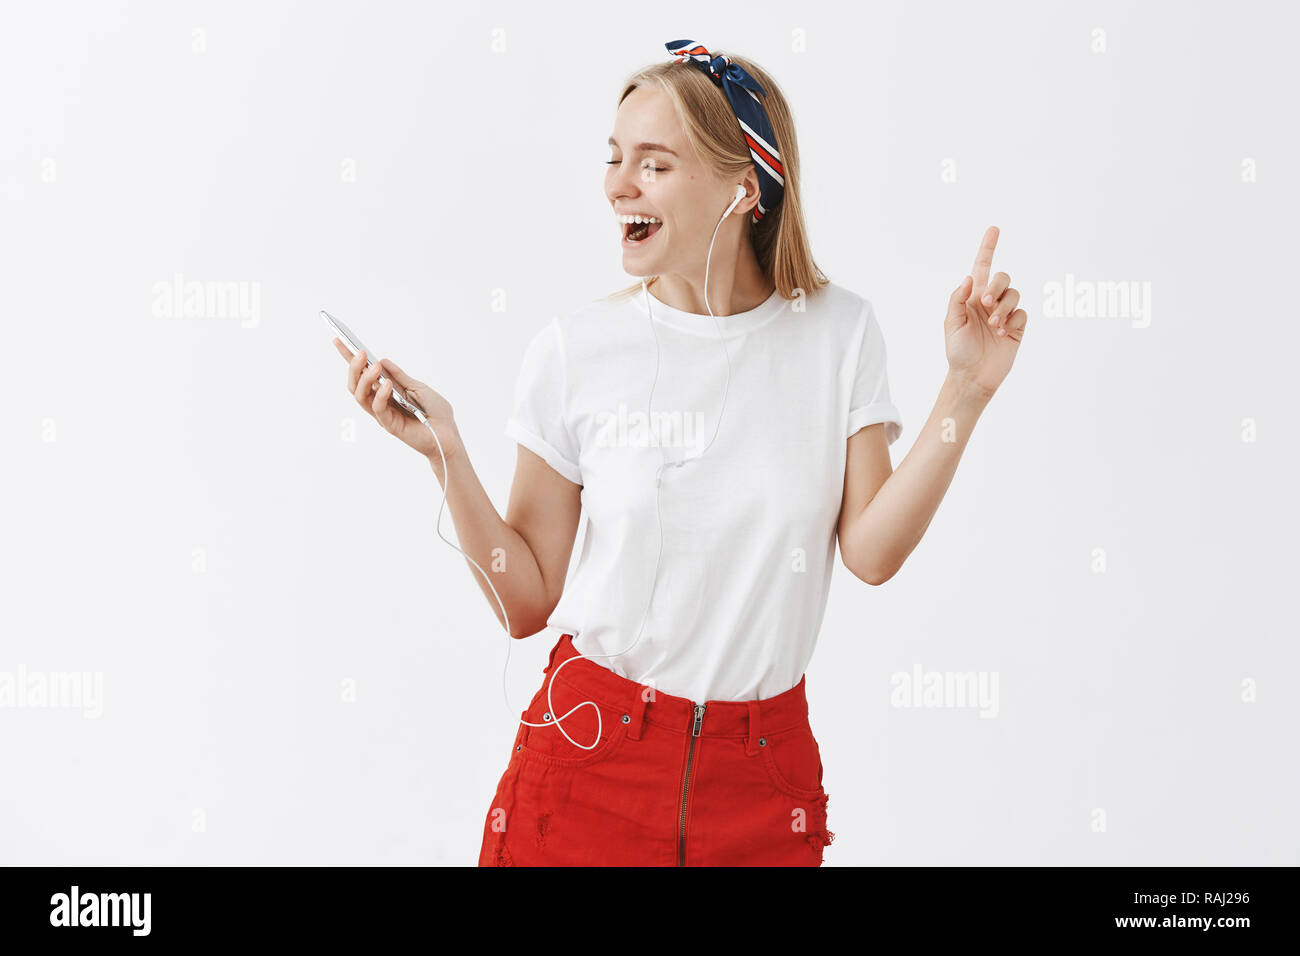 Portrait of charming carefree blonde female in stylish outfit dancing with raised hands turning left and singing along favorite songs, listening music in earphones, holding smartphone in hand - Stock Image